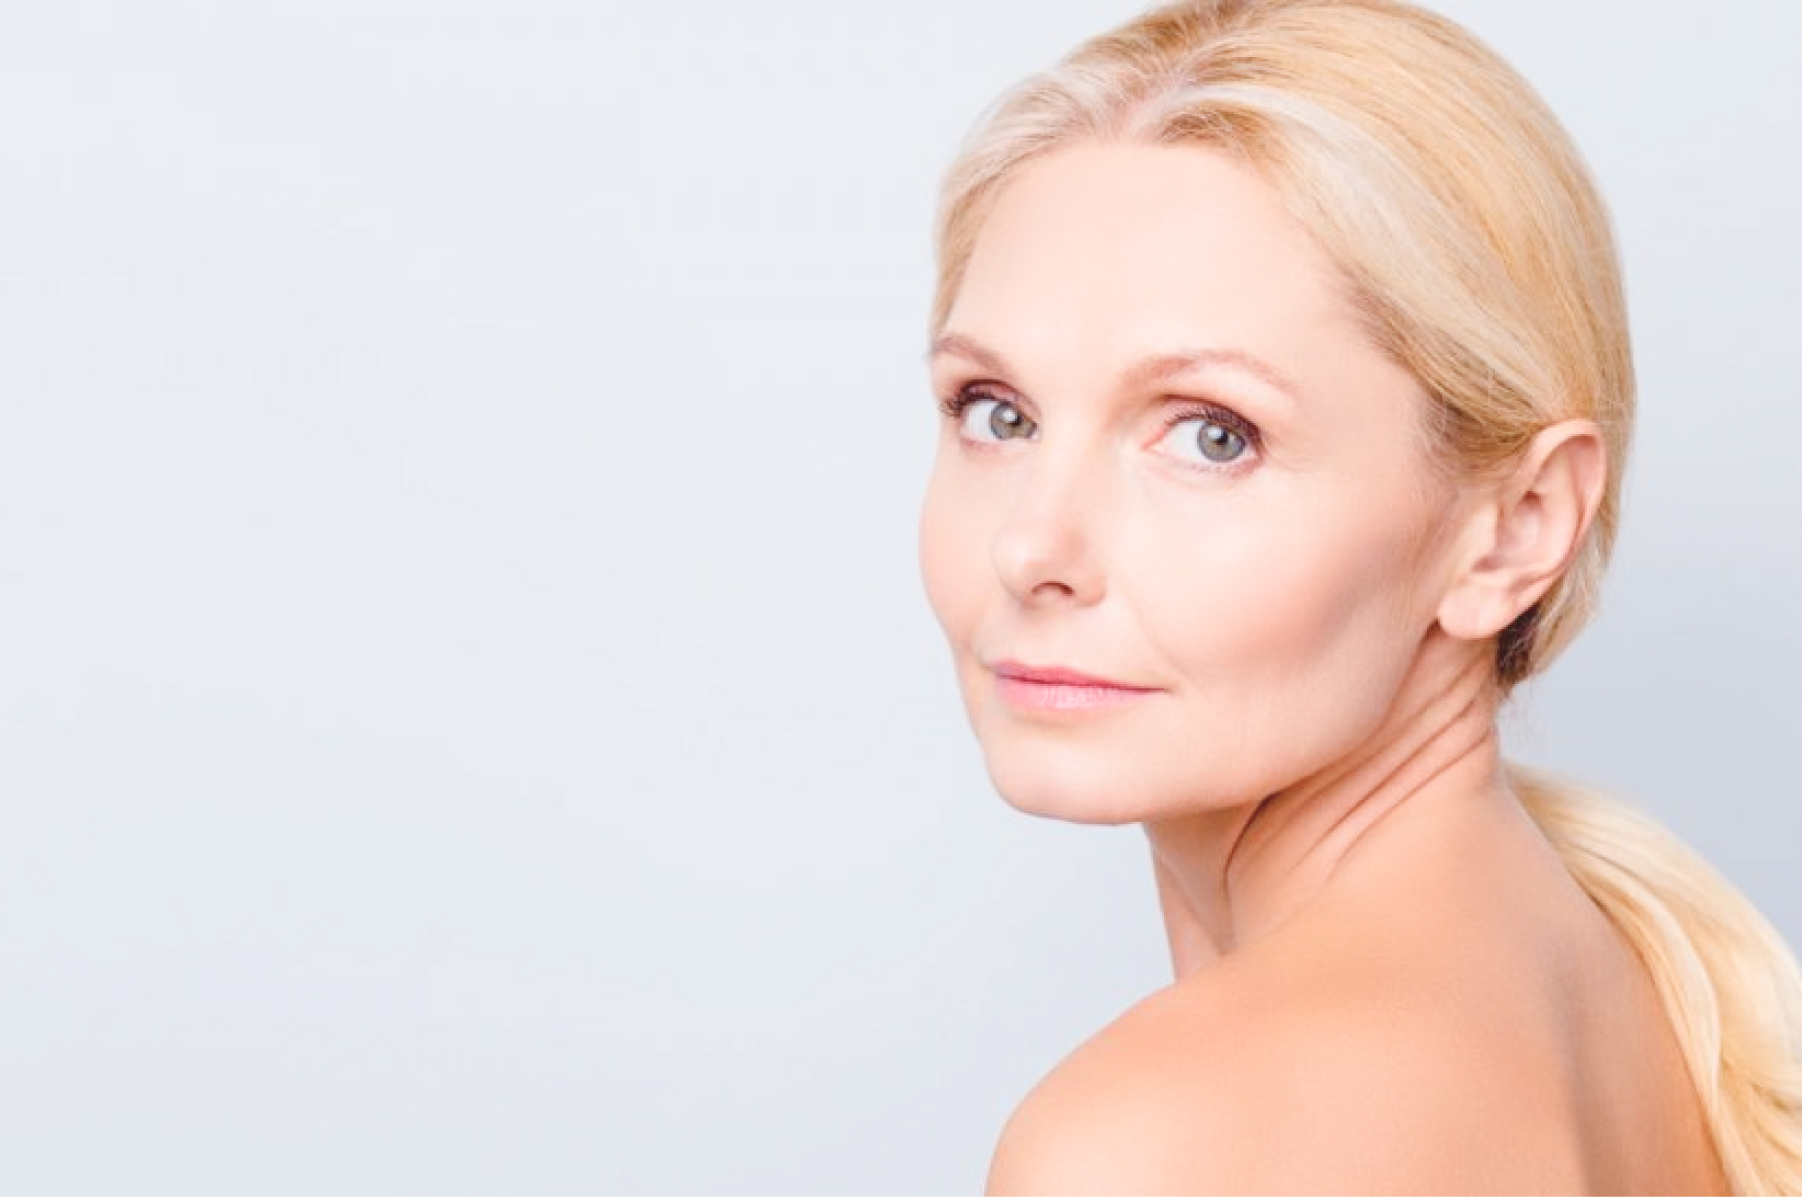 skin treatments in the UK